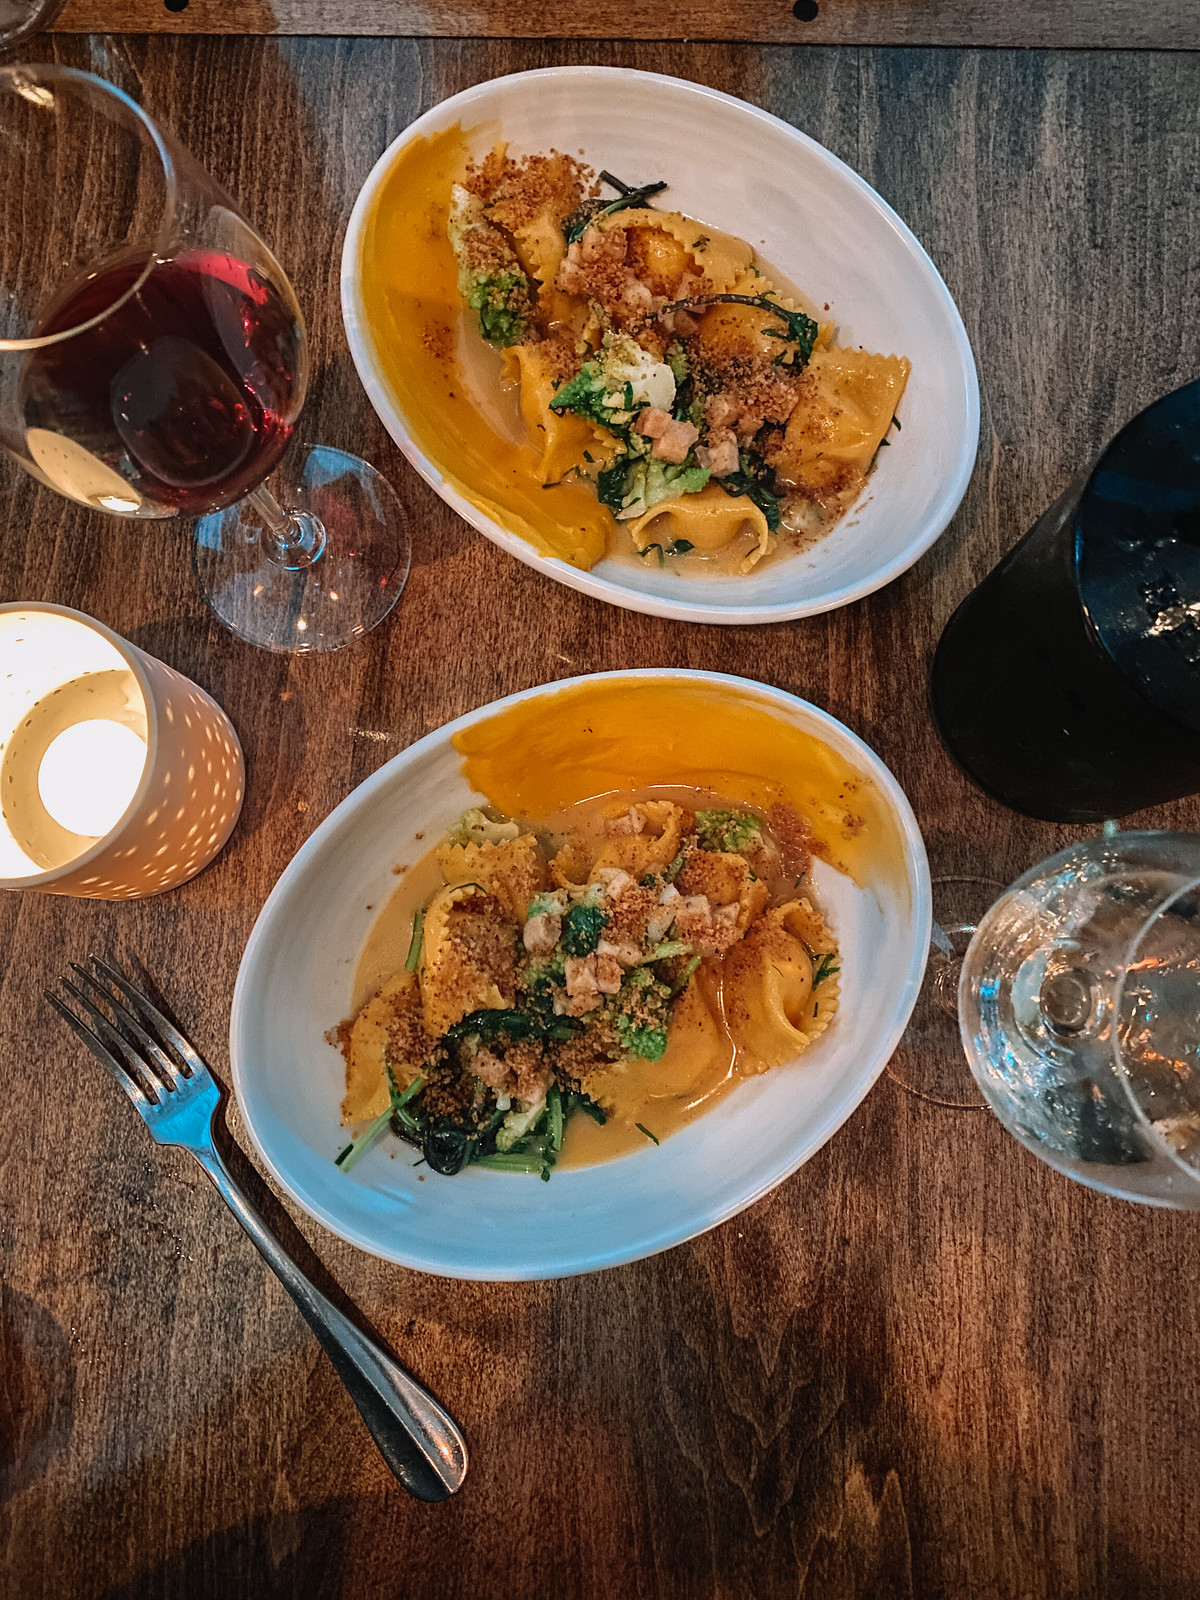 Hen of the Wood Restaurant Agnolotti Dinner | Waterbury Vermont | My Complete Vermont Fall Travel Guide: What to See, Do & Eat | Ultimate Fall Guide to Vermont | 5 Day Vermont Road Trip | Fall Foliage Road Trip Guide